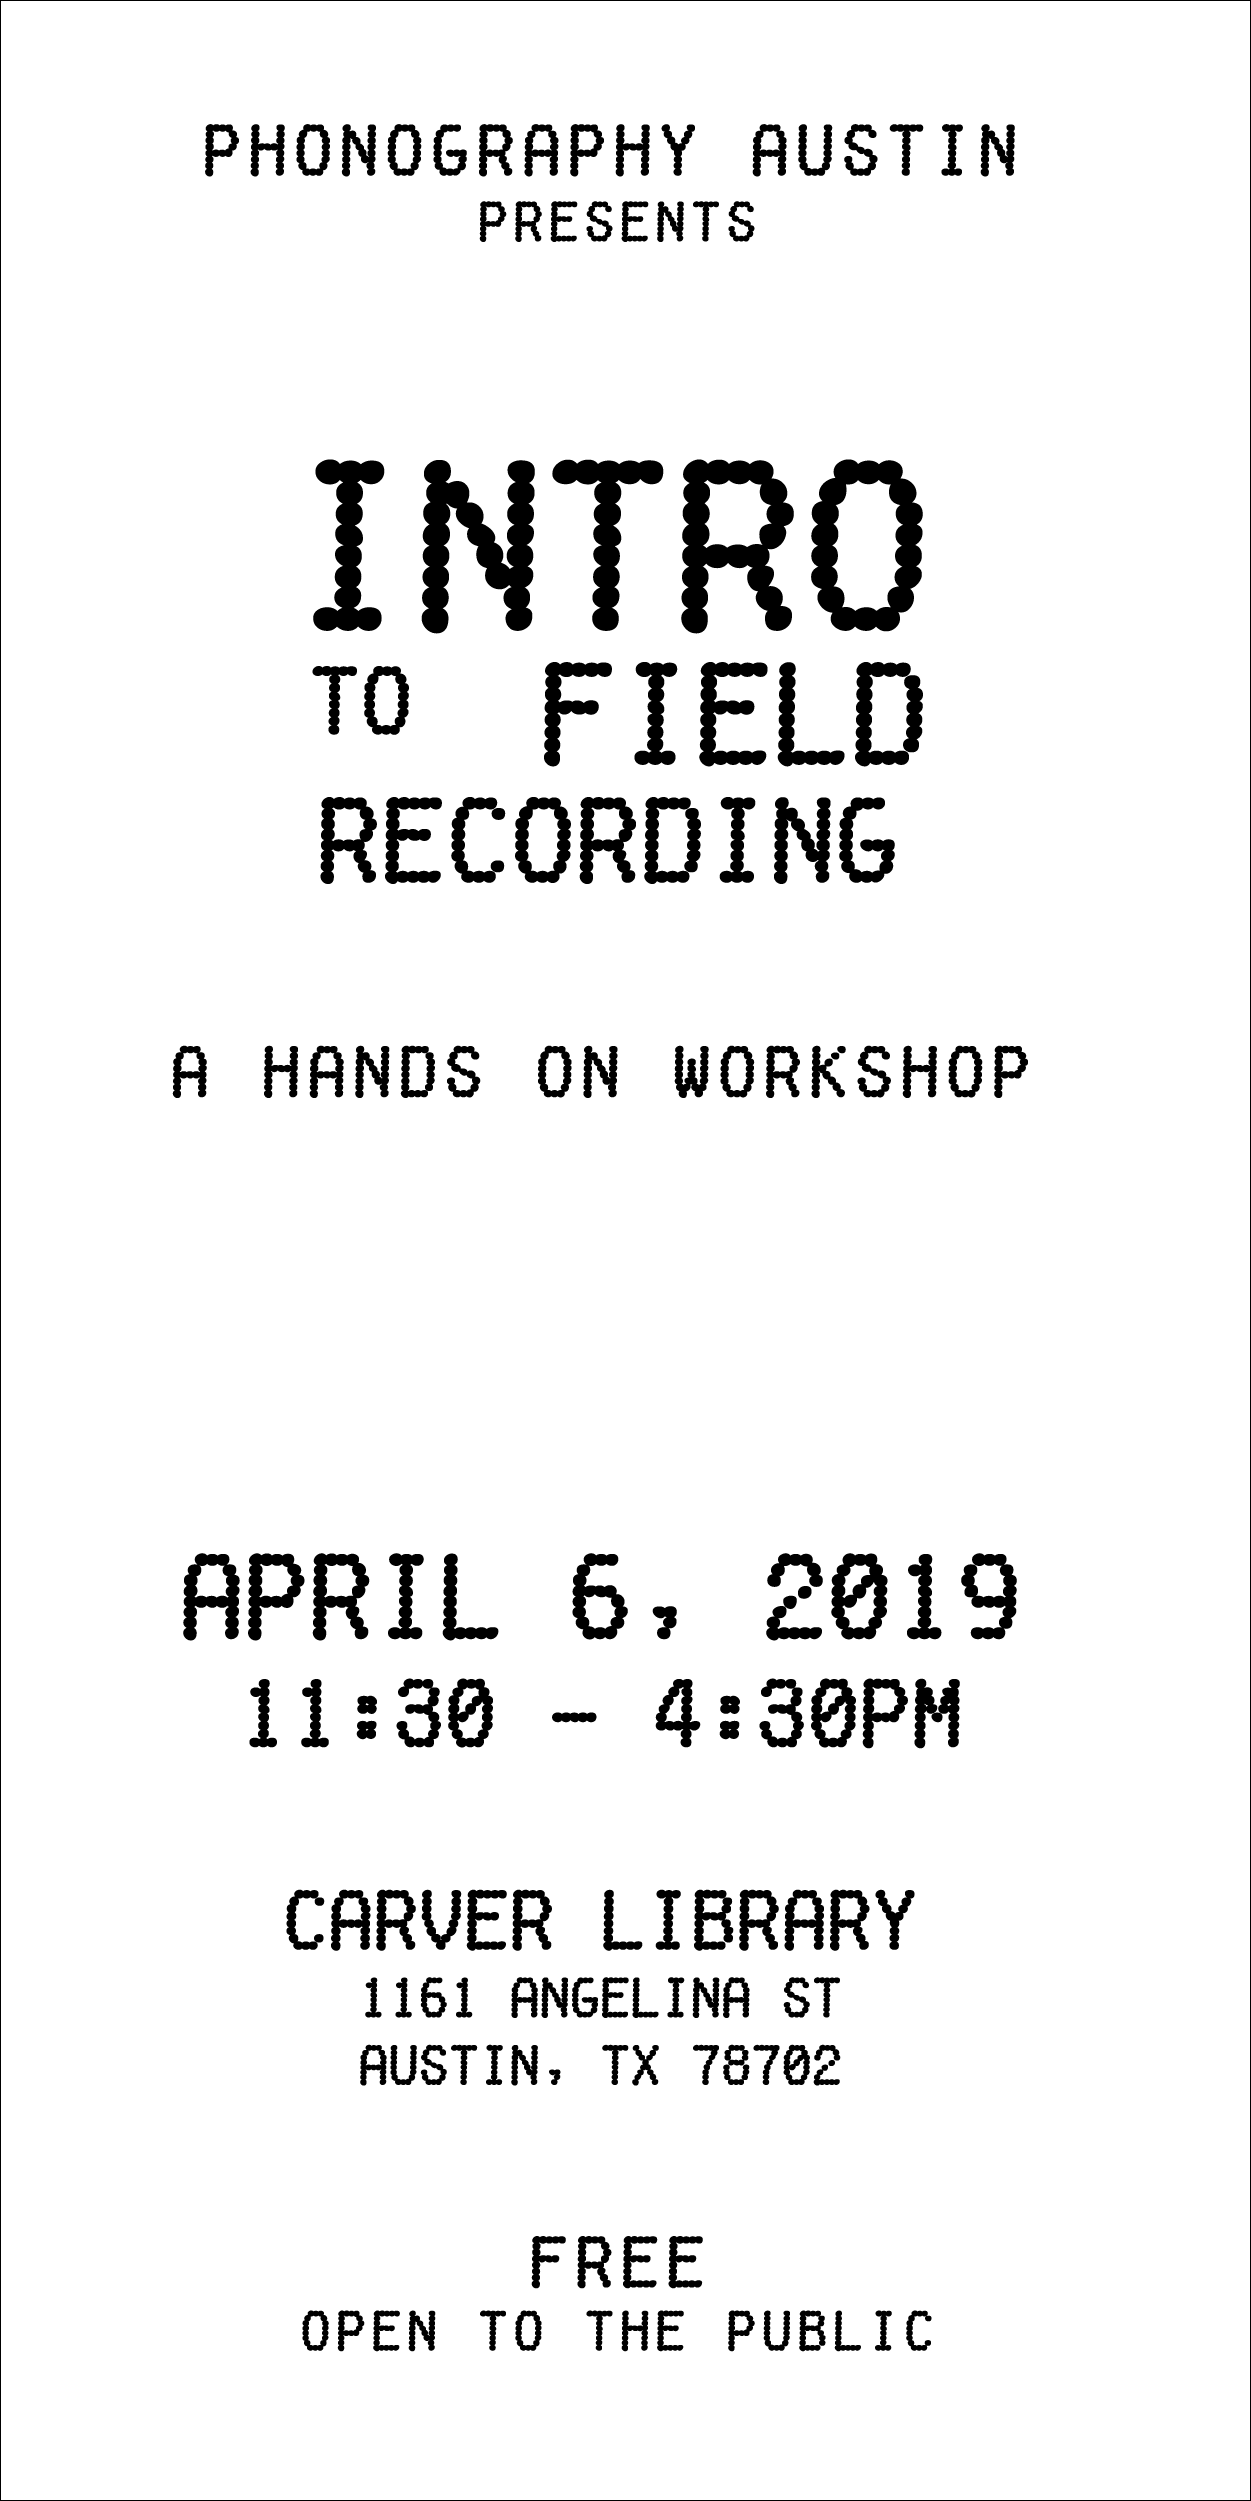 Introduction to field recording workshop presented by Phonography Austin